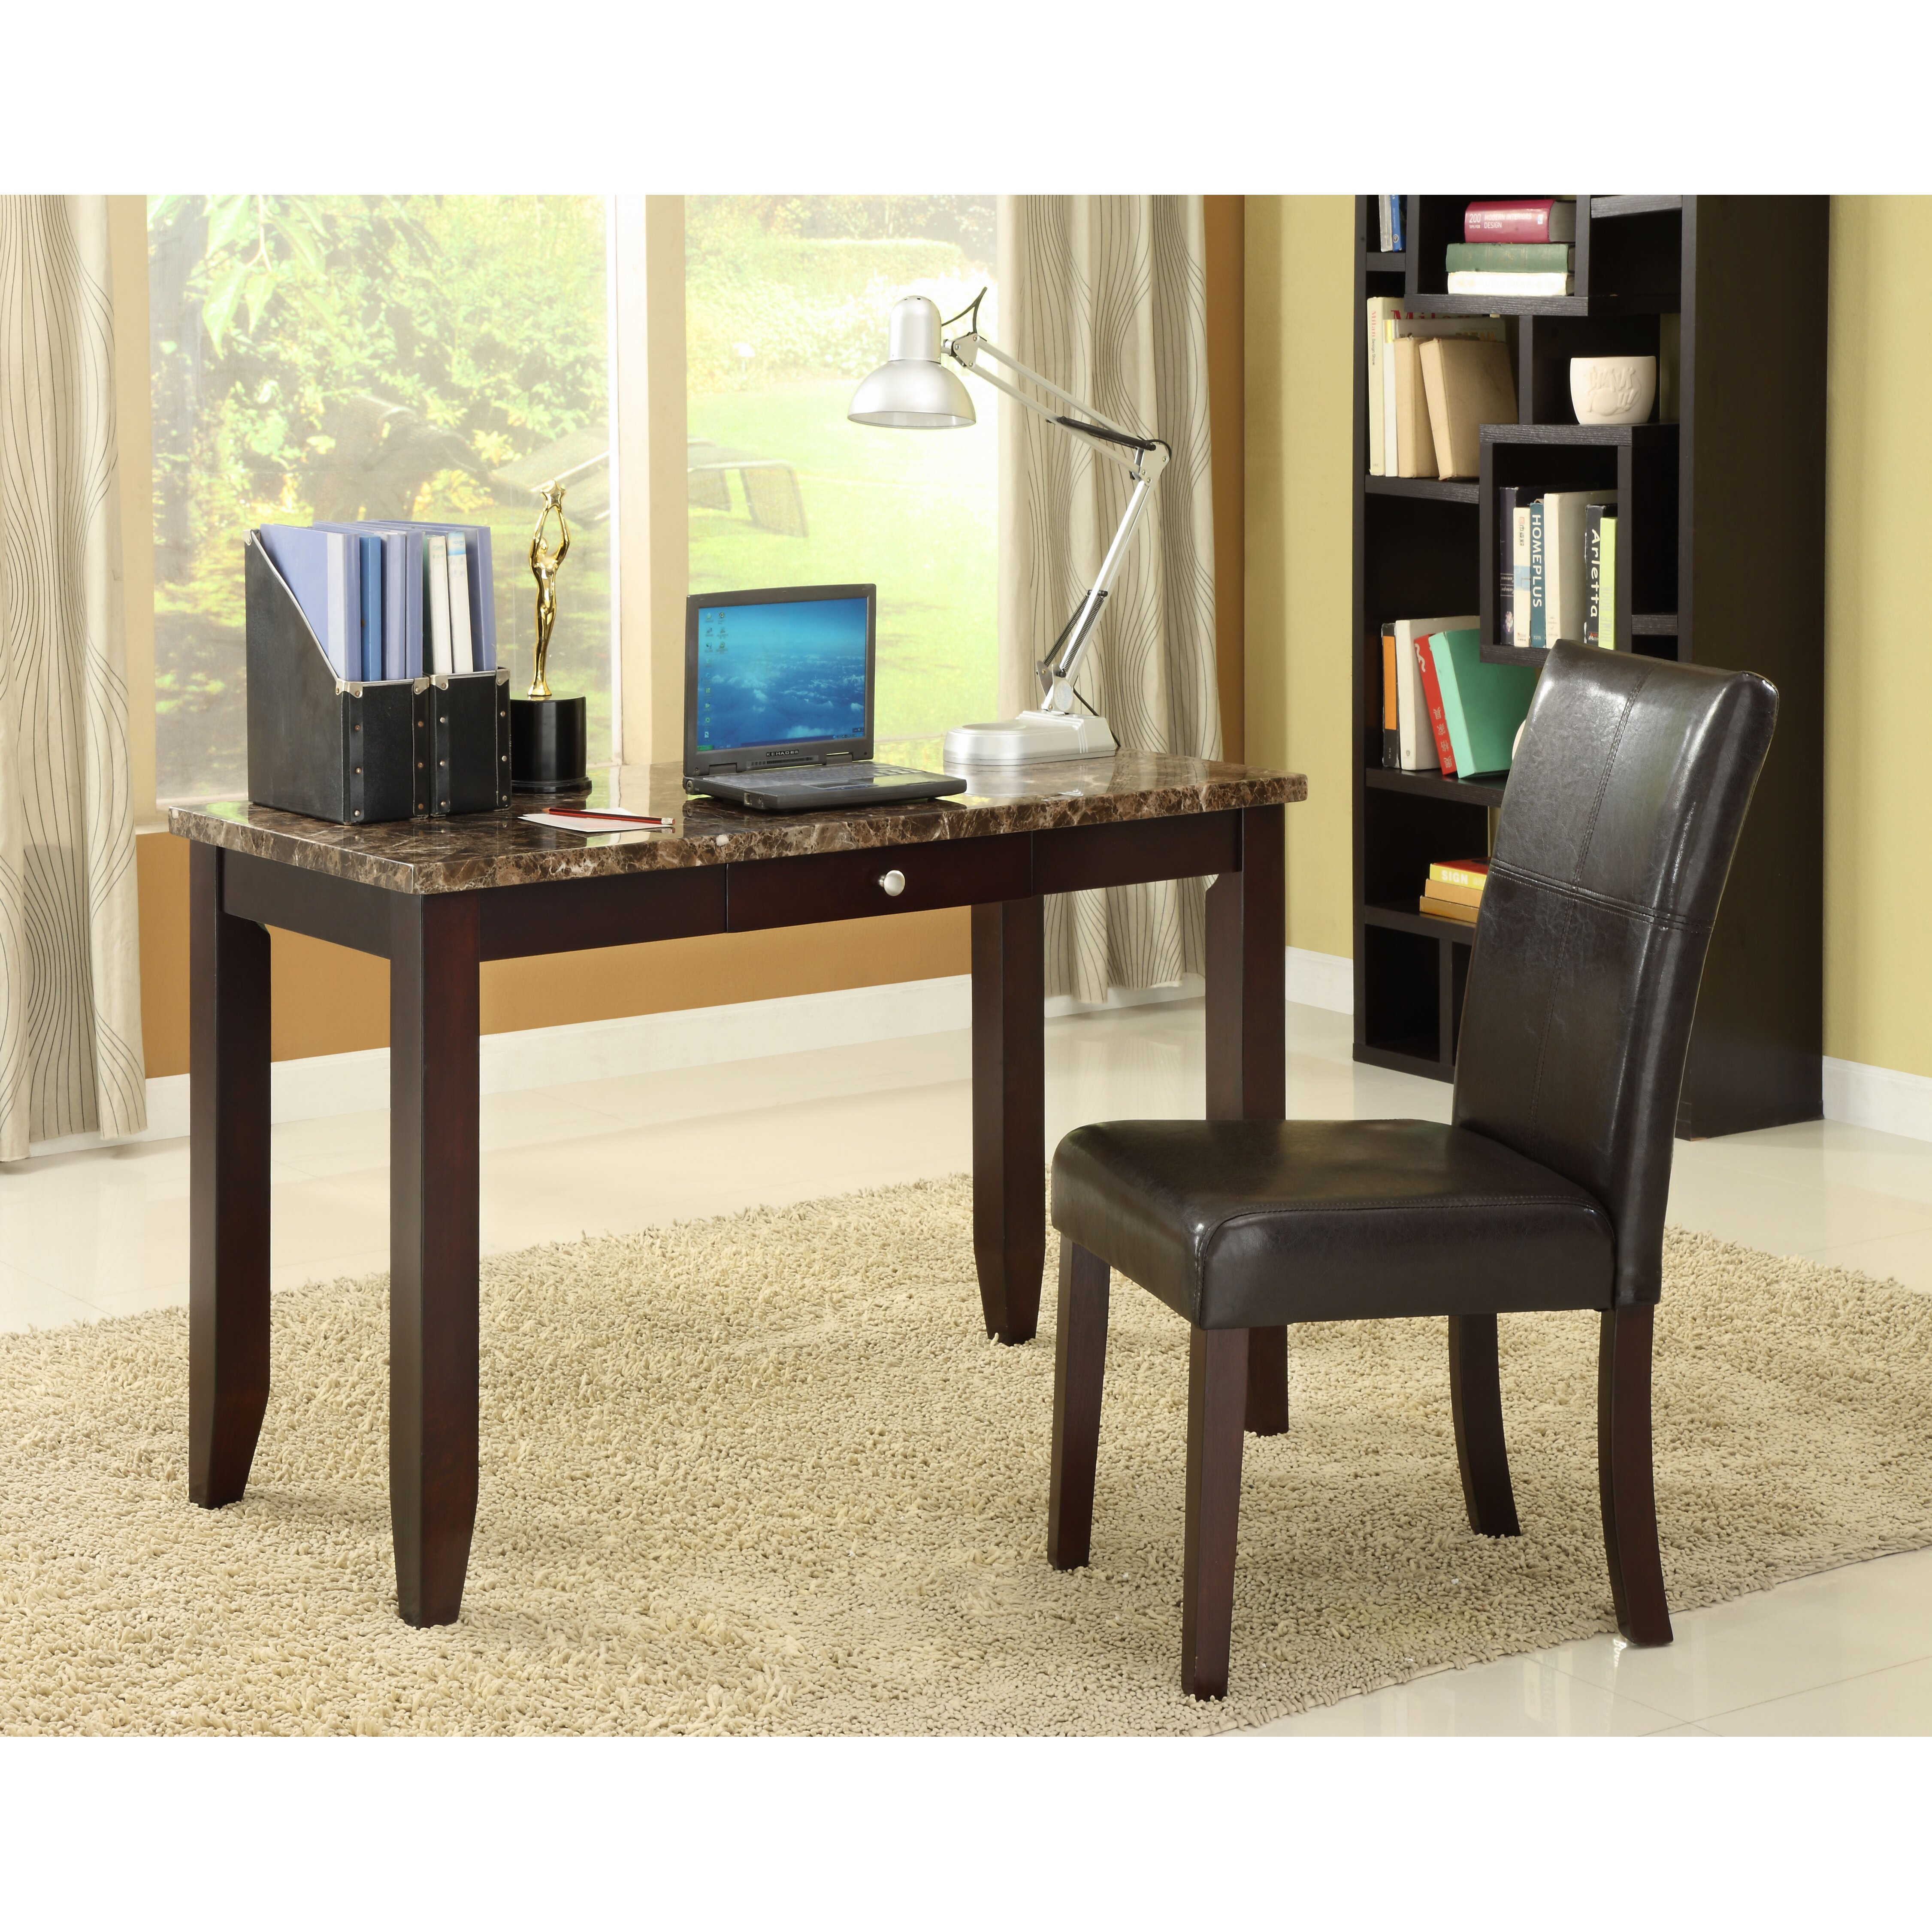 puter Desk And Chair Set